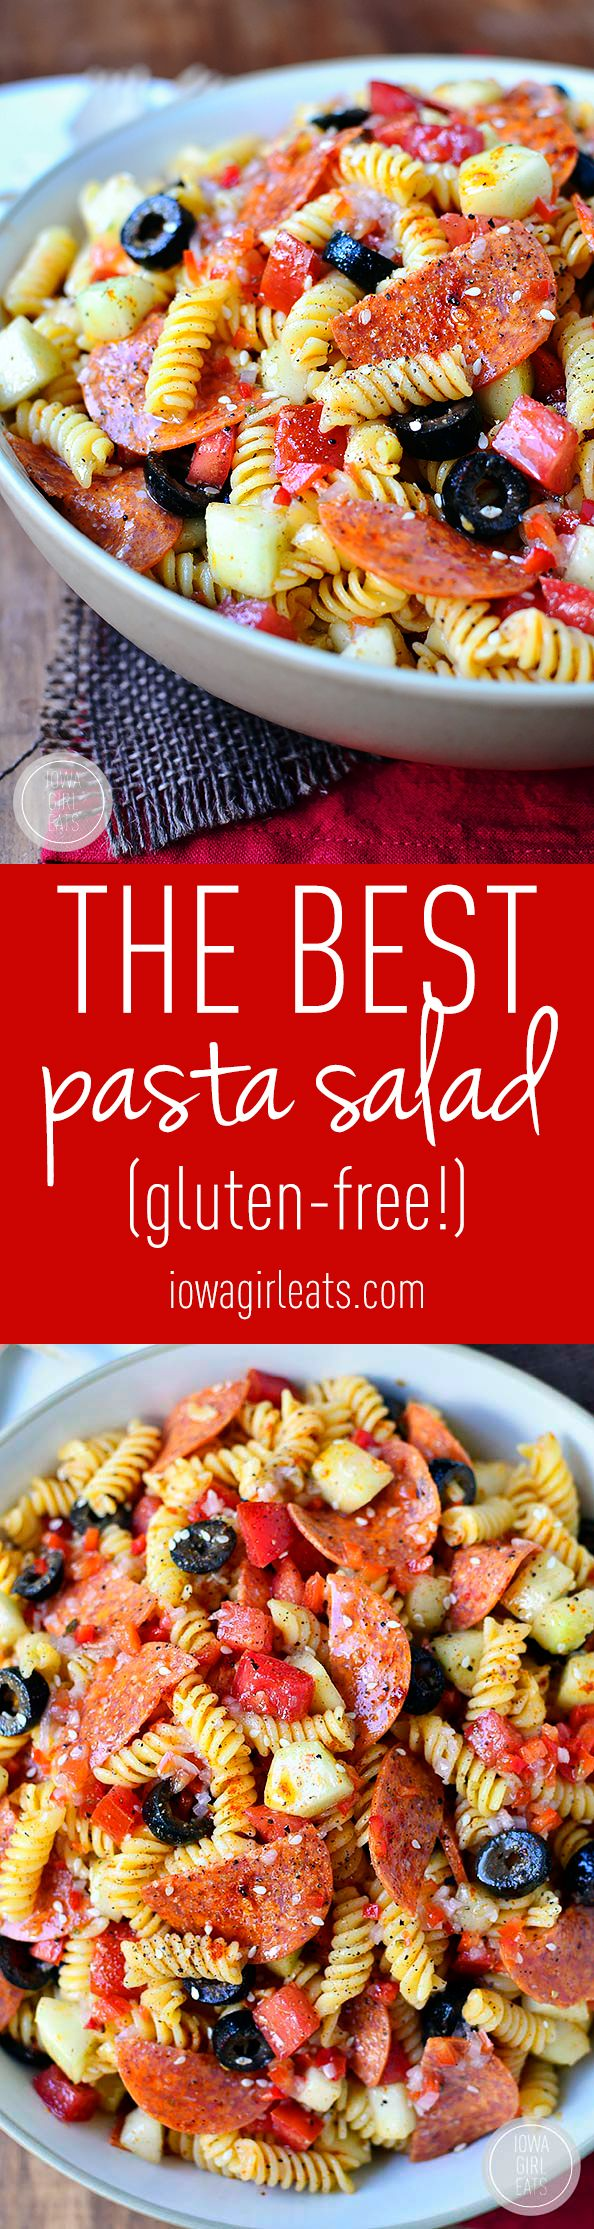 The BEST Pasta Salad is an old family recipe. Simple and simply the best (easily made gluten-free, too!)